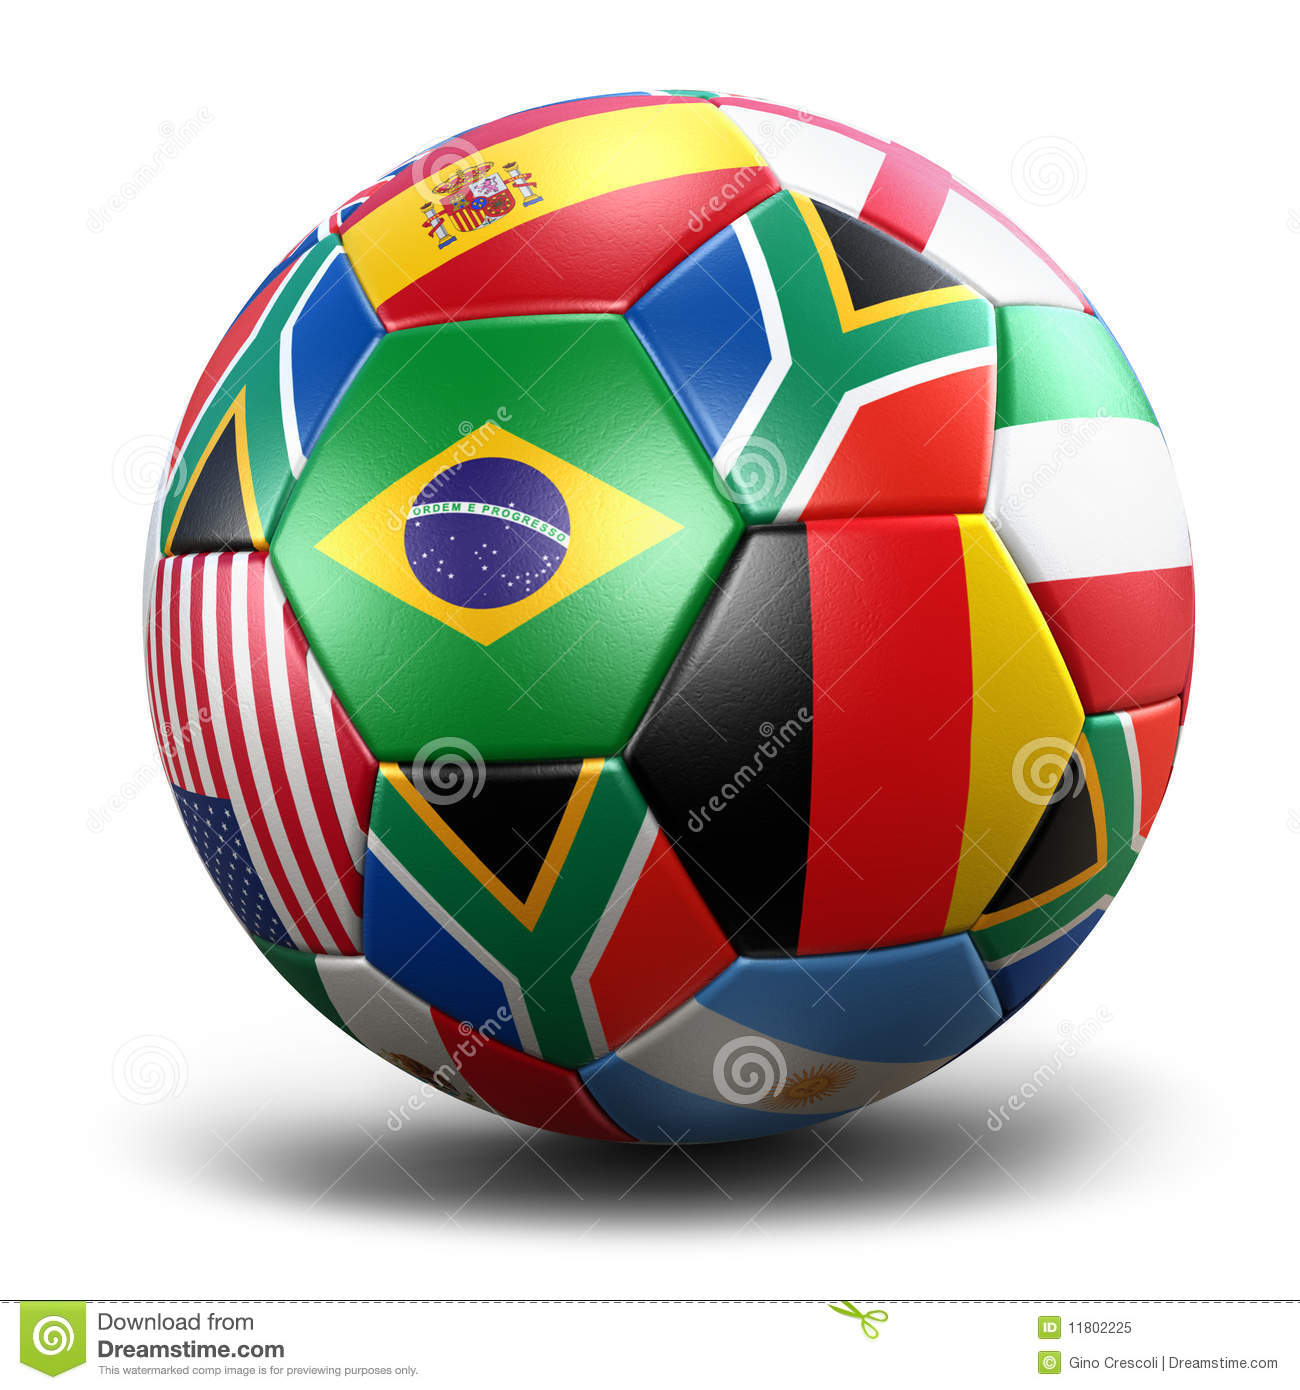 world cup soccer ball royalty free stock photo   image 11802225